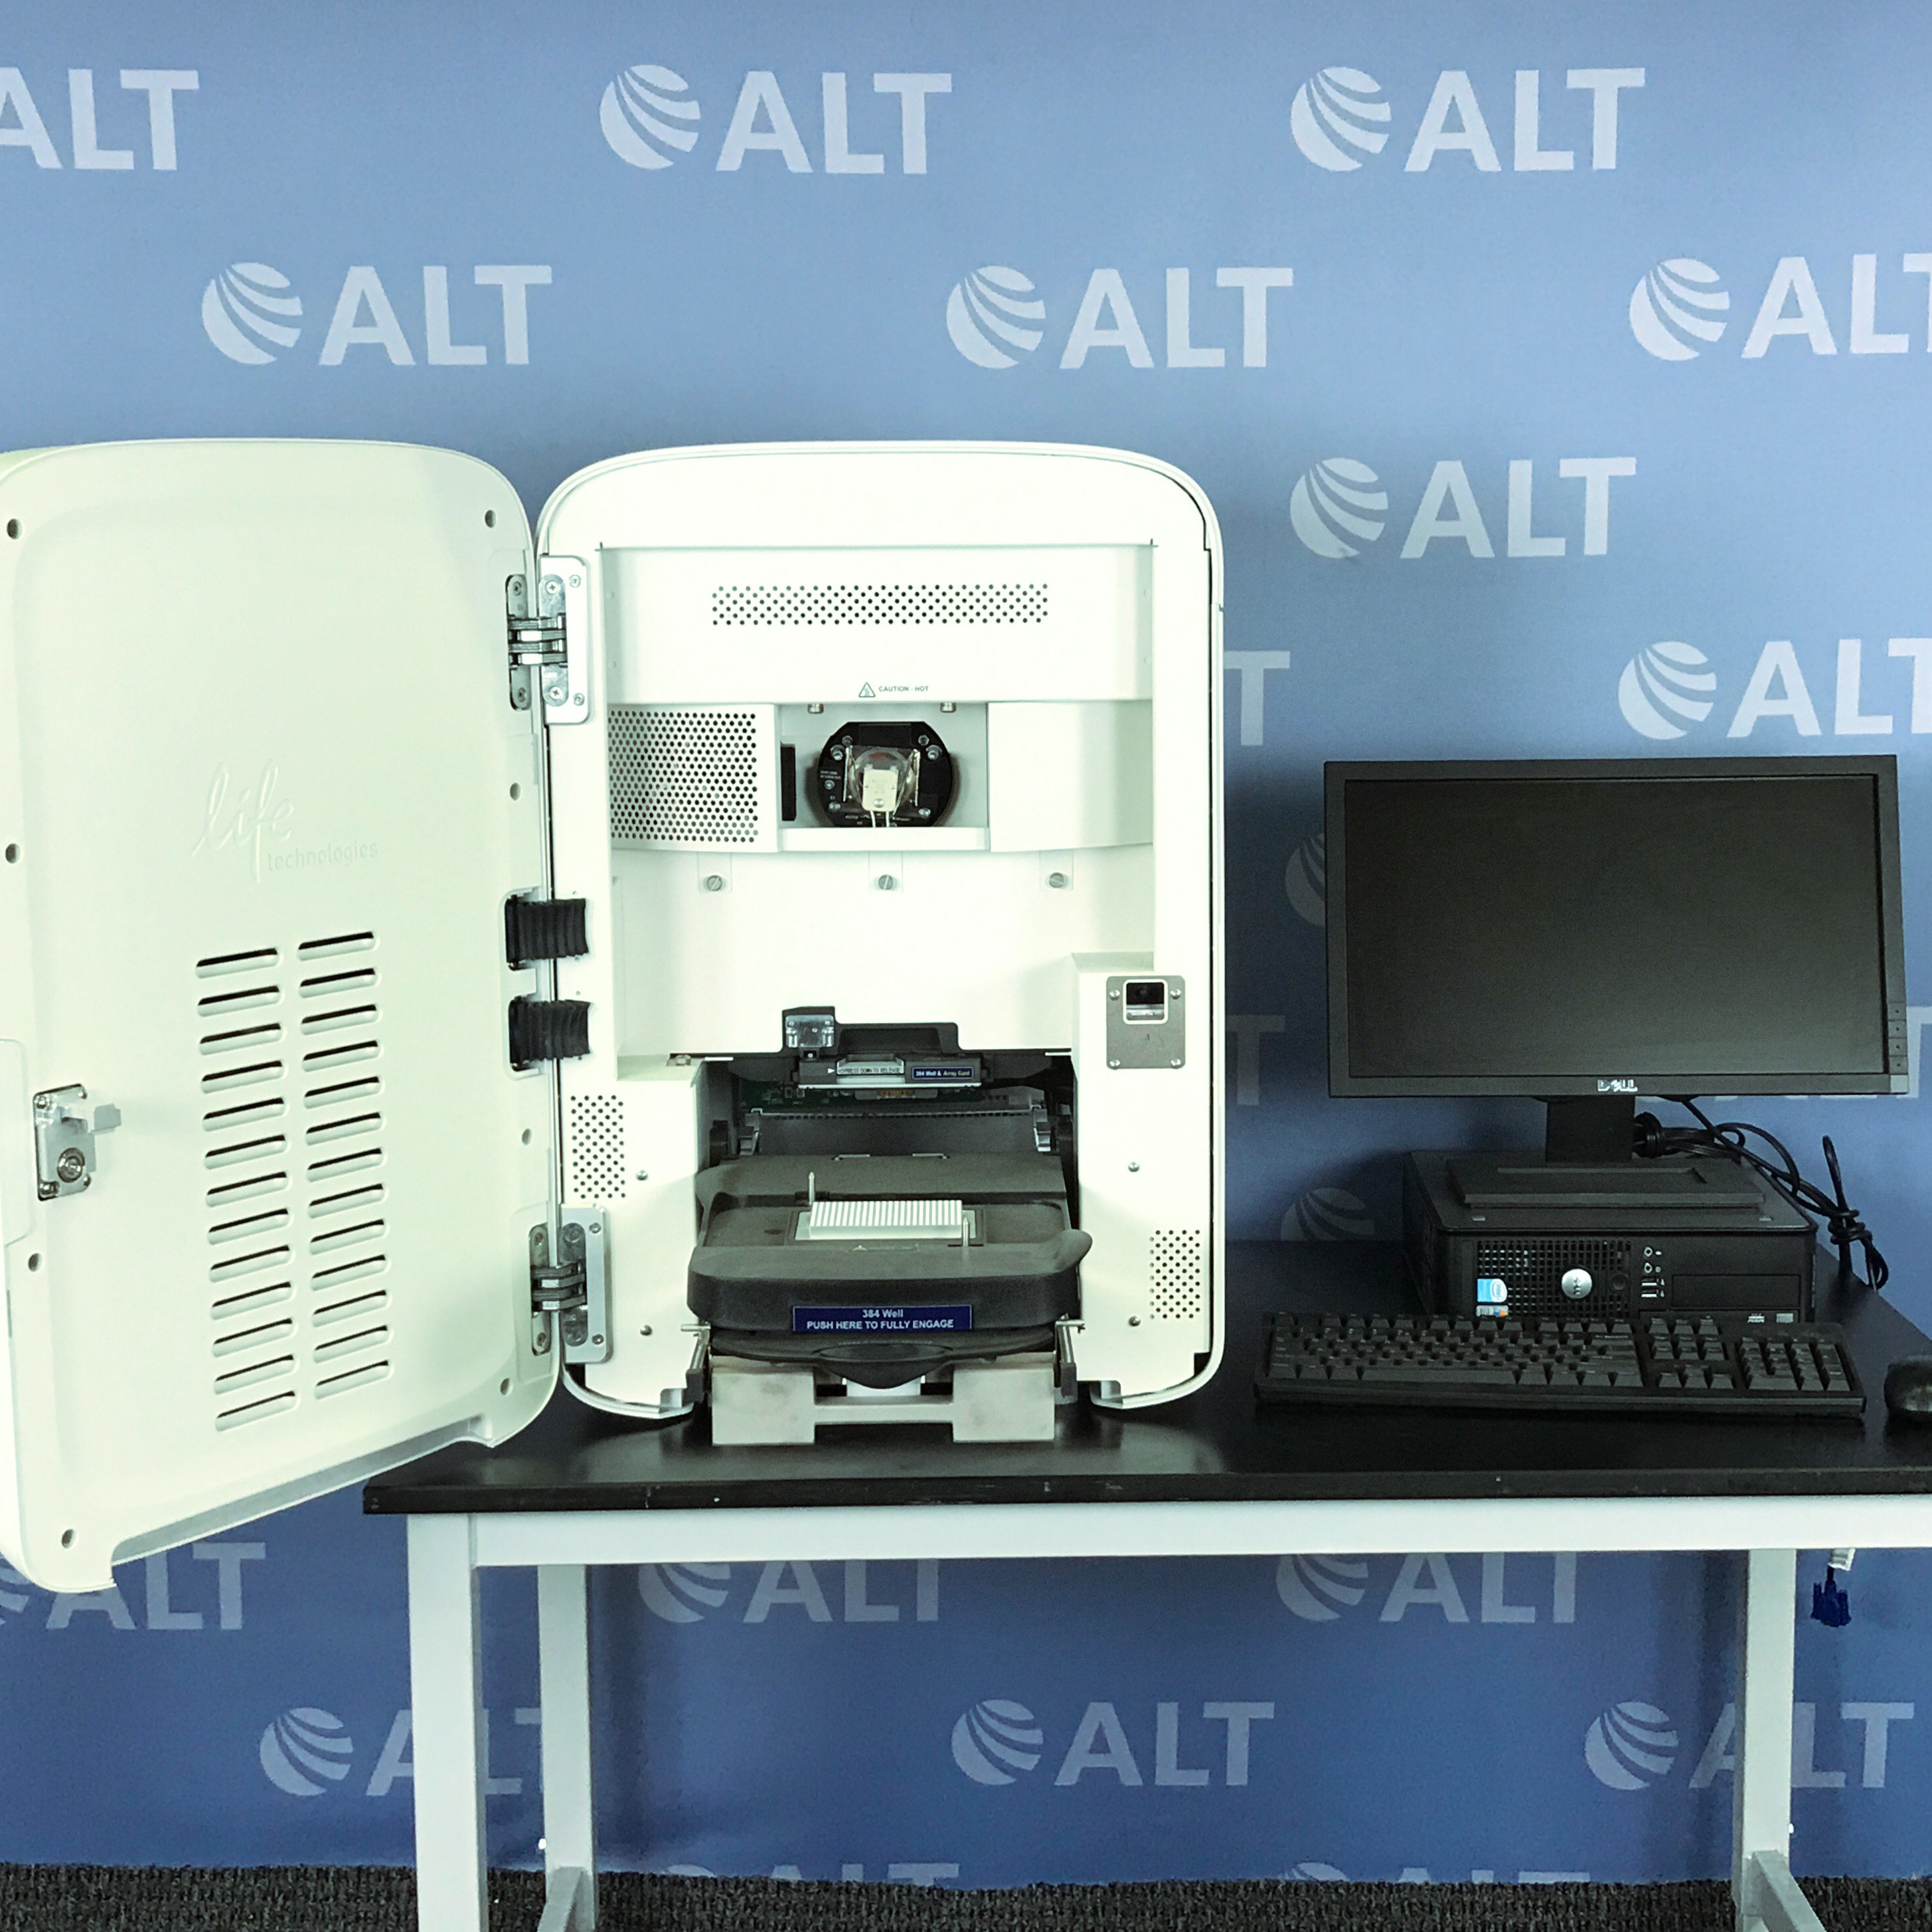 Life Technologies Inc. Applied Biosystems Quant Studio 6 Flex Real Time PCR System Image